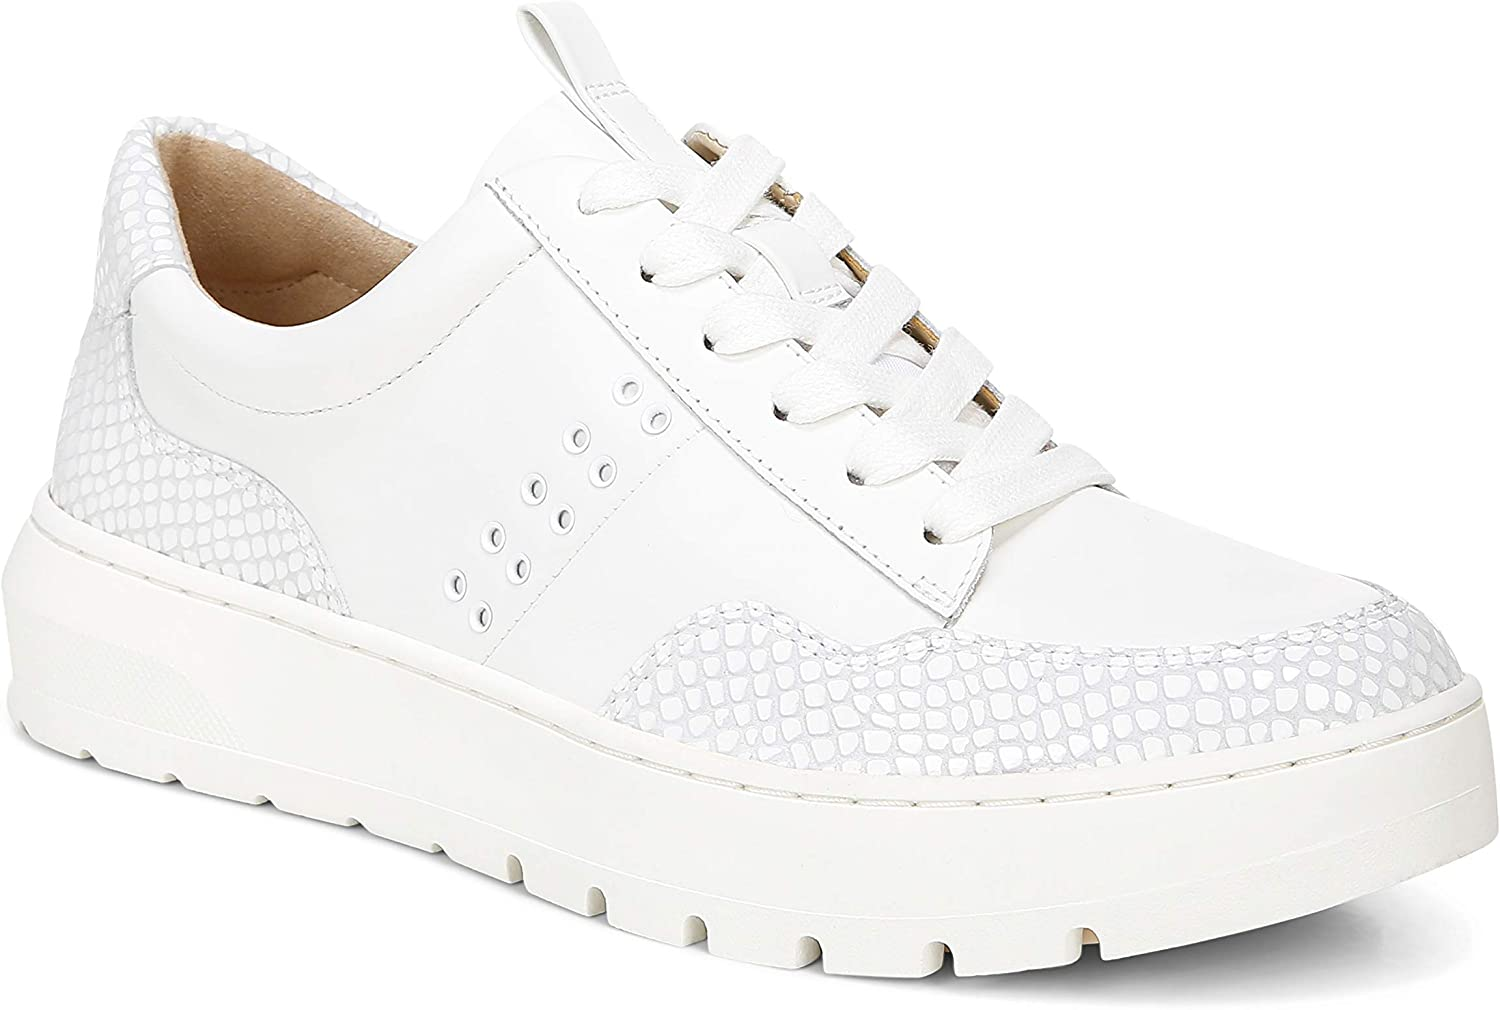 Vionic Women's Abyss Ysenia Platform Sneaker- Lace Up Casual Sneakers with Concealed Orthotic Arch Support